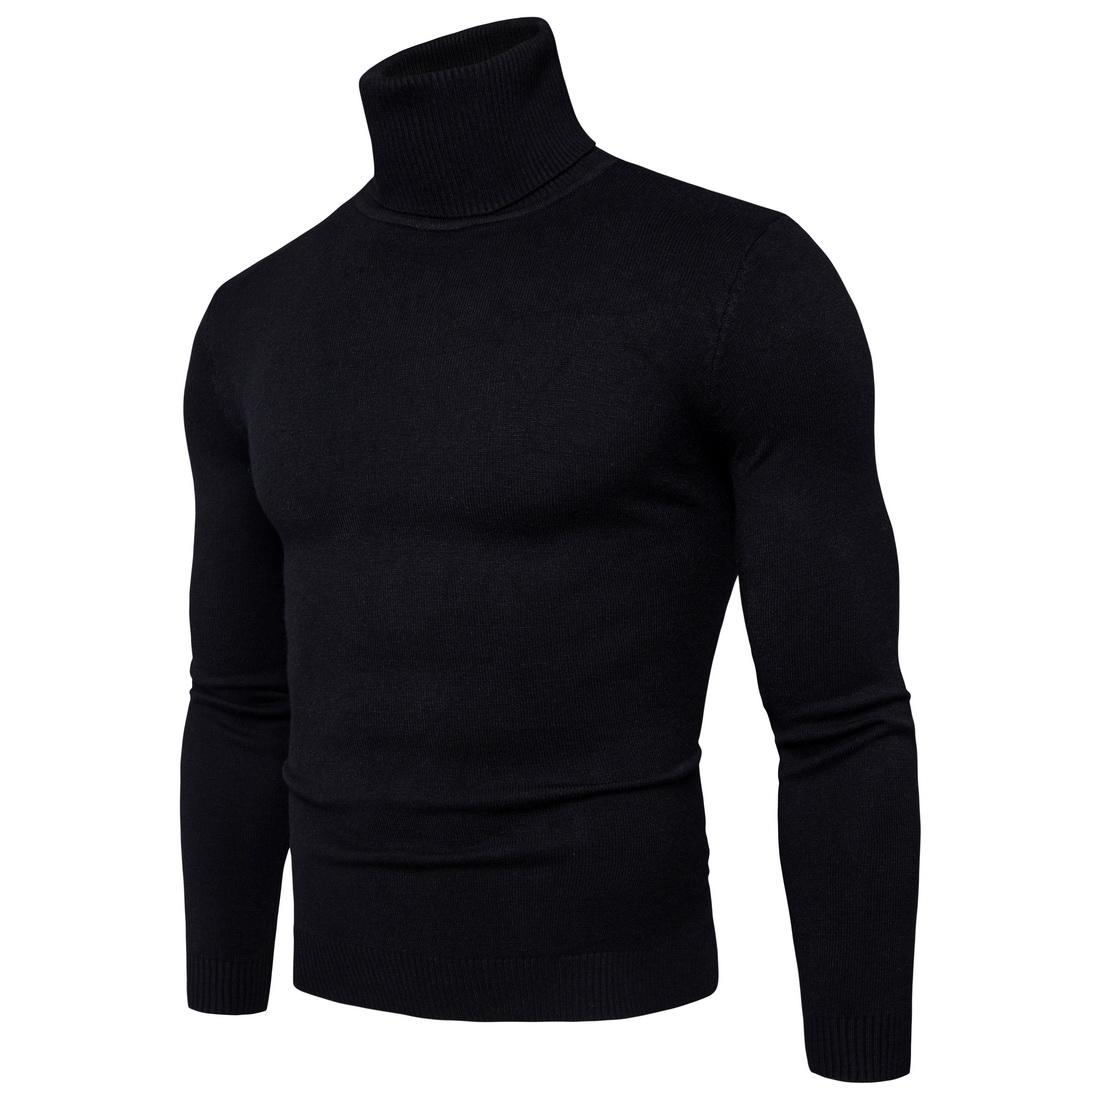 on sale 08d71 38a9c Sweater Pullover Men 2018 Male Brand Casual Slim Sweaters Men High Quality  Solid Color Hedging Turtleneck Men S Sweater